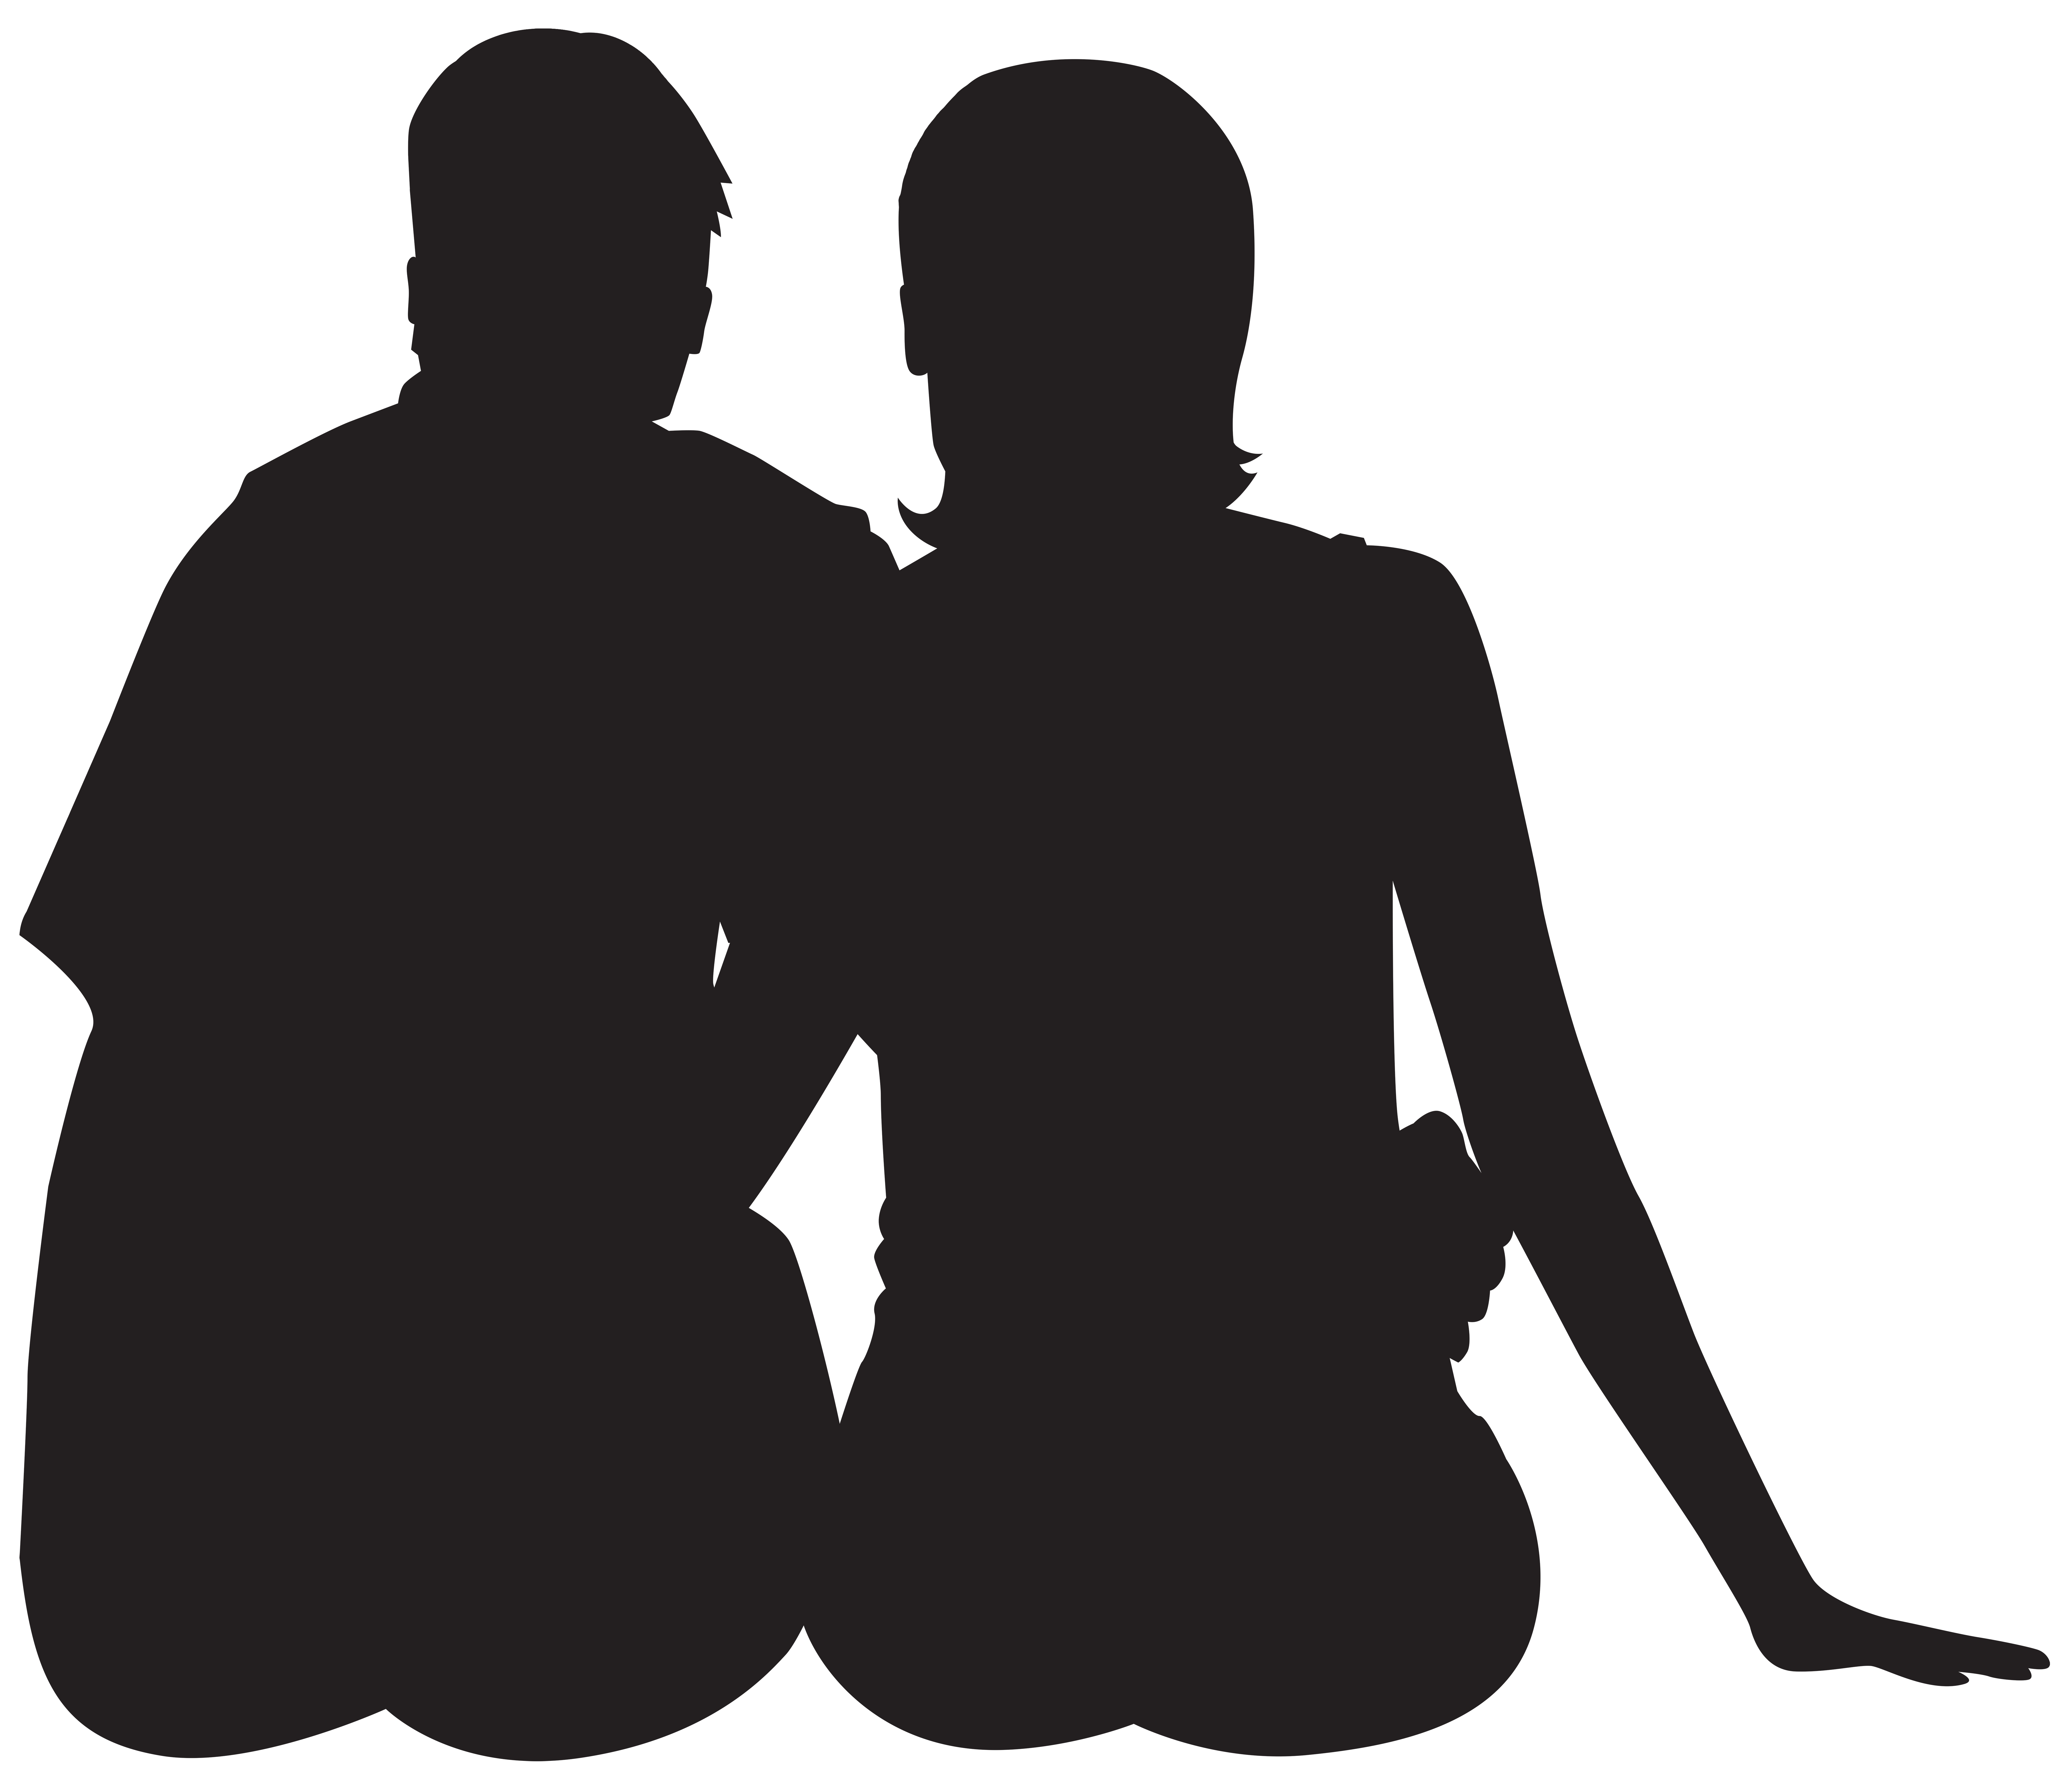 Sitting Couple Silhouette PNG Clip Art Image.